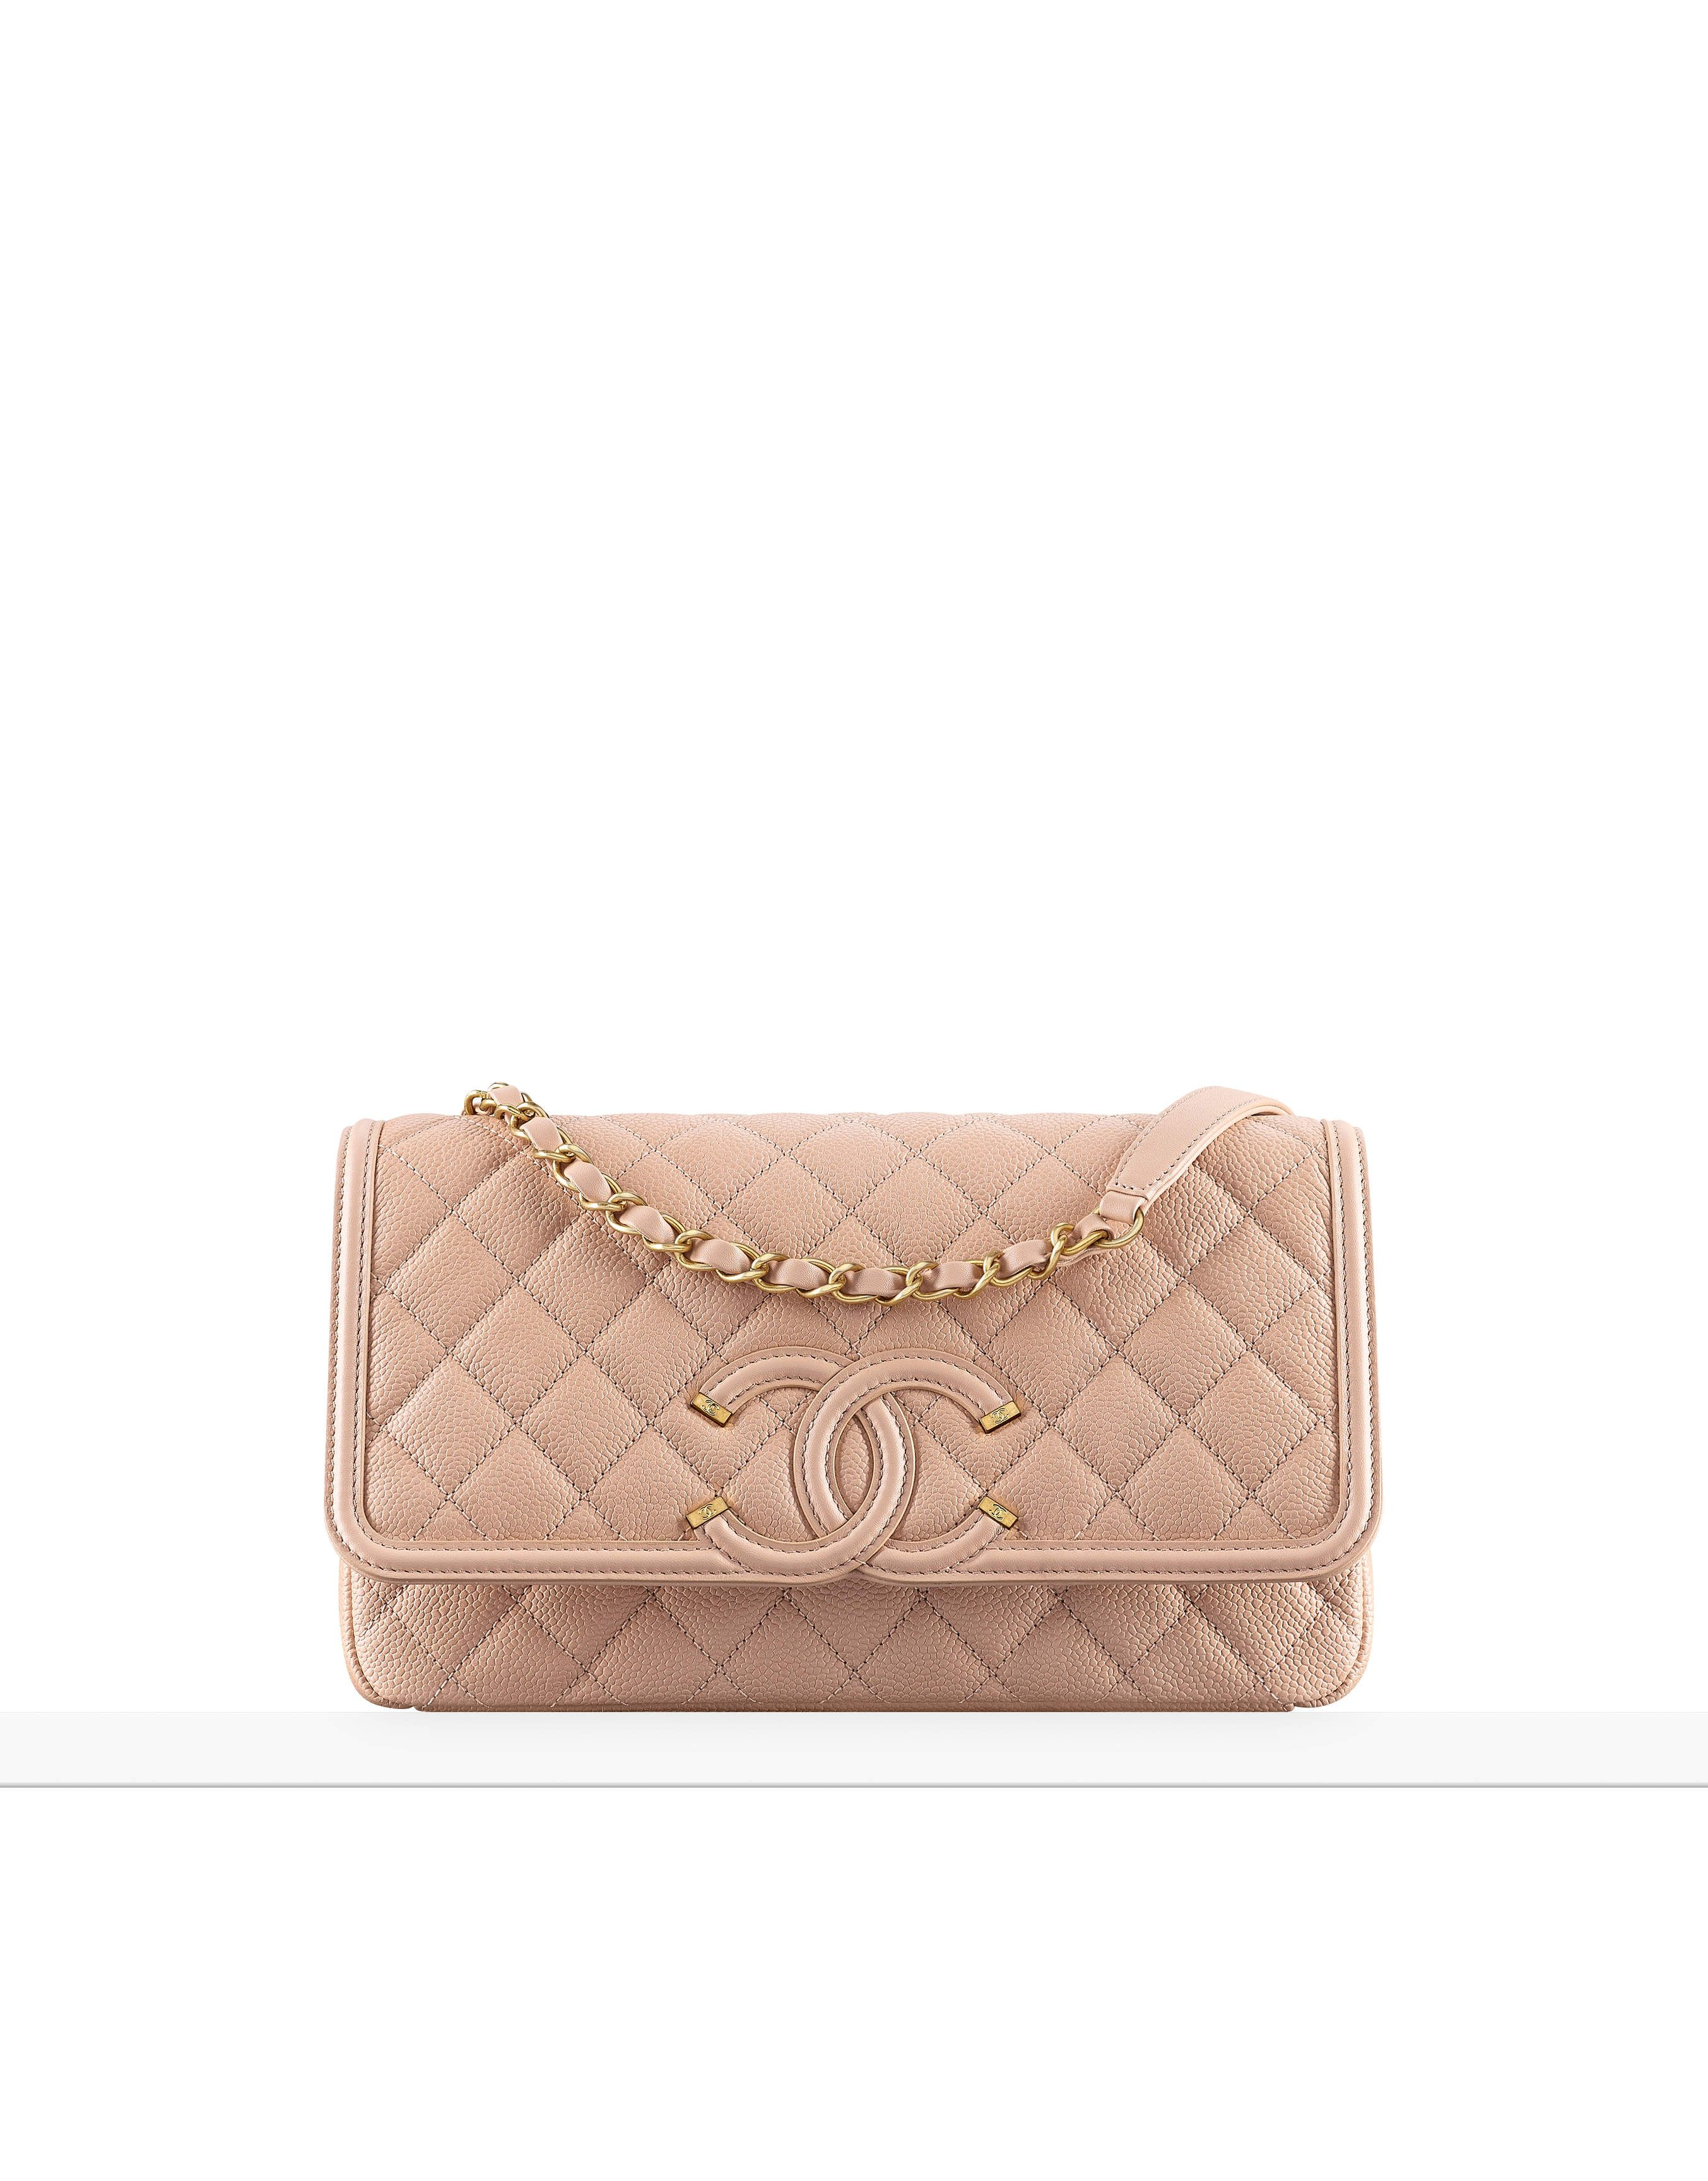 91eaa2b59062 SS 2017 The latest Handbags collections on the CHANEL official website